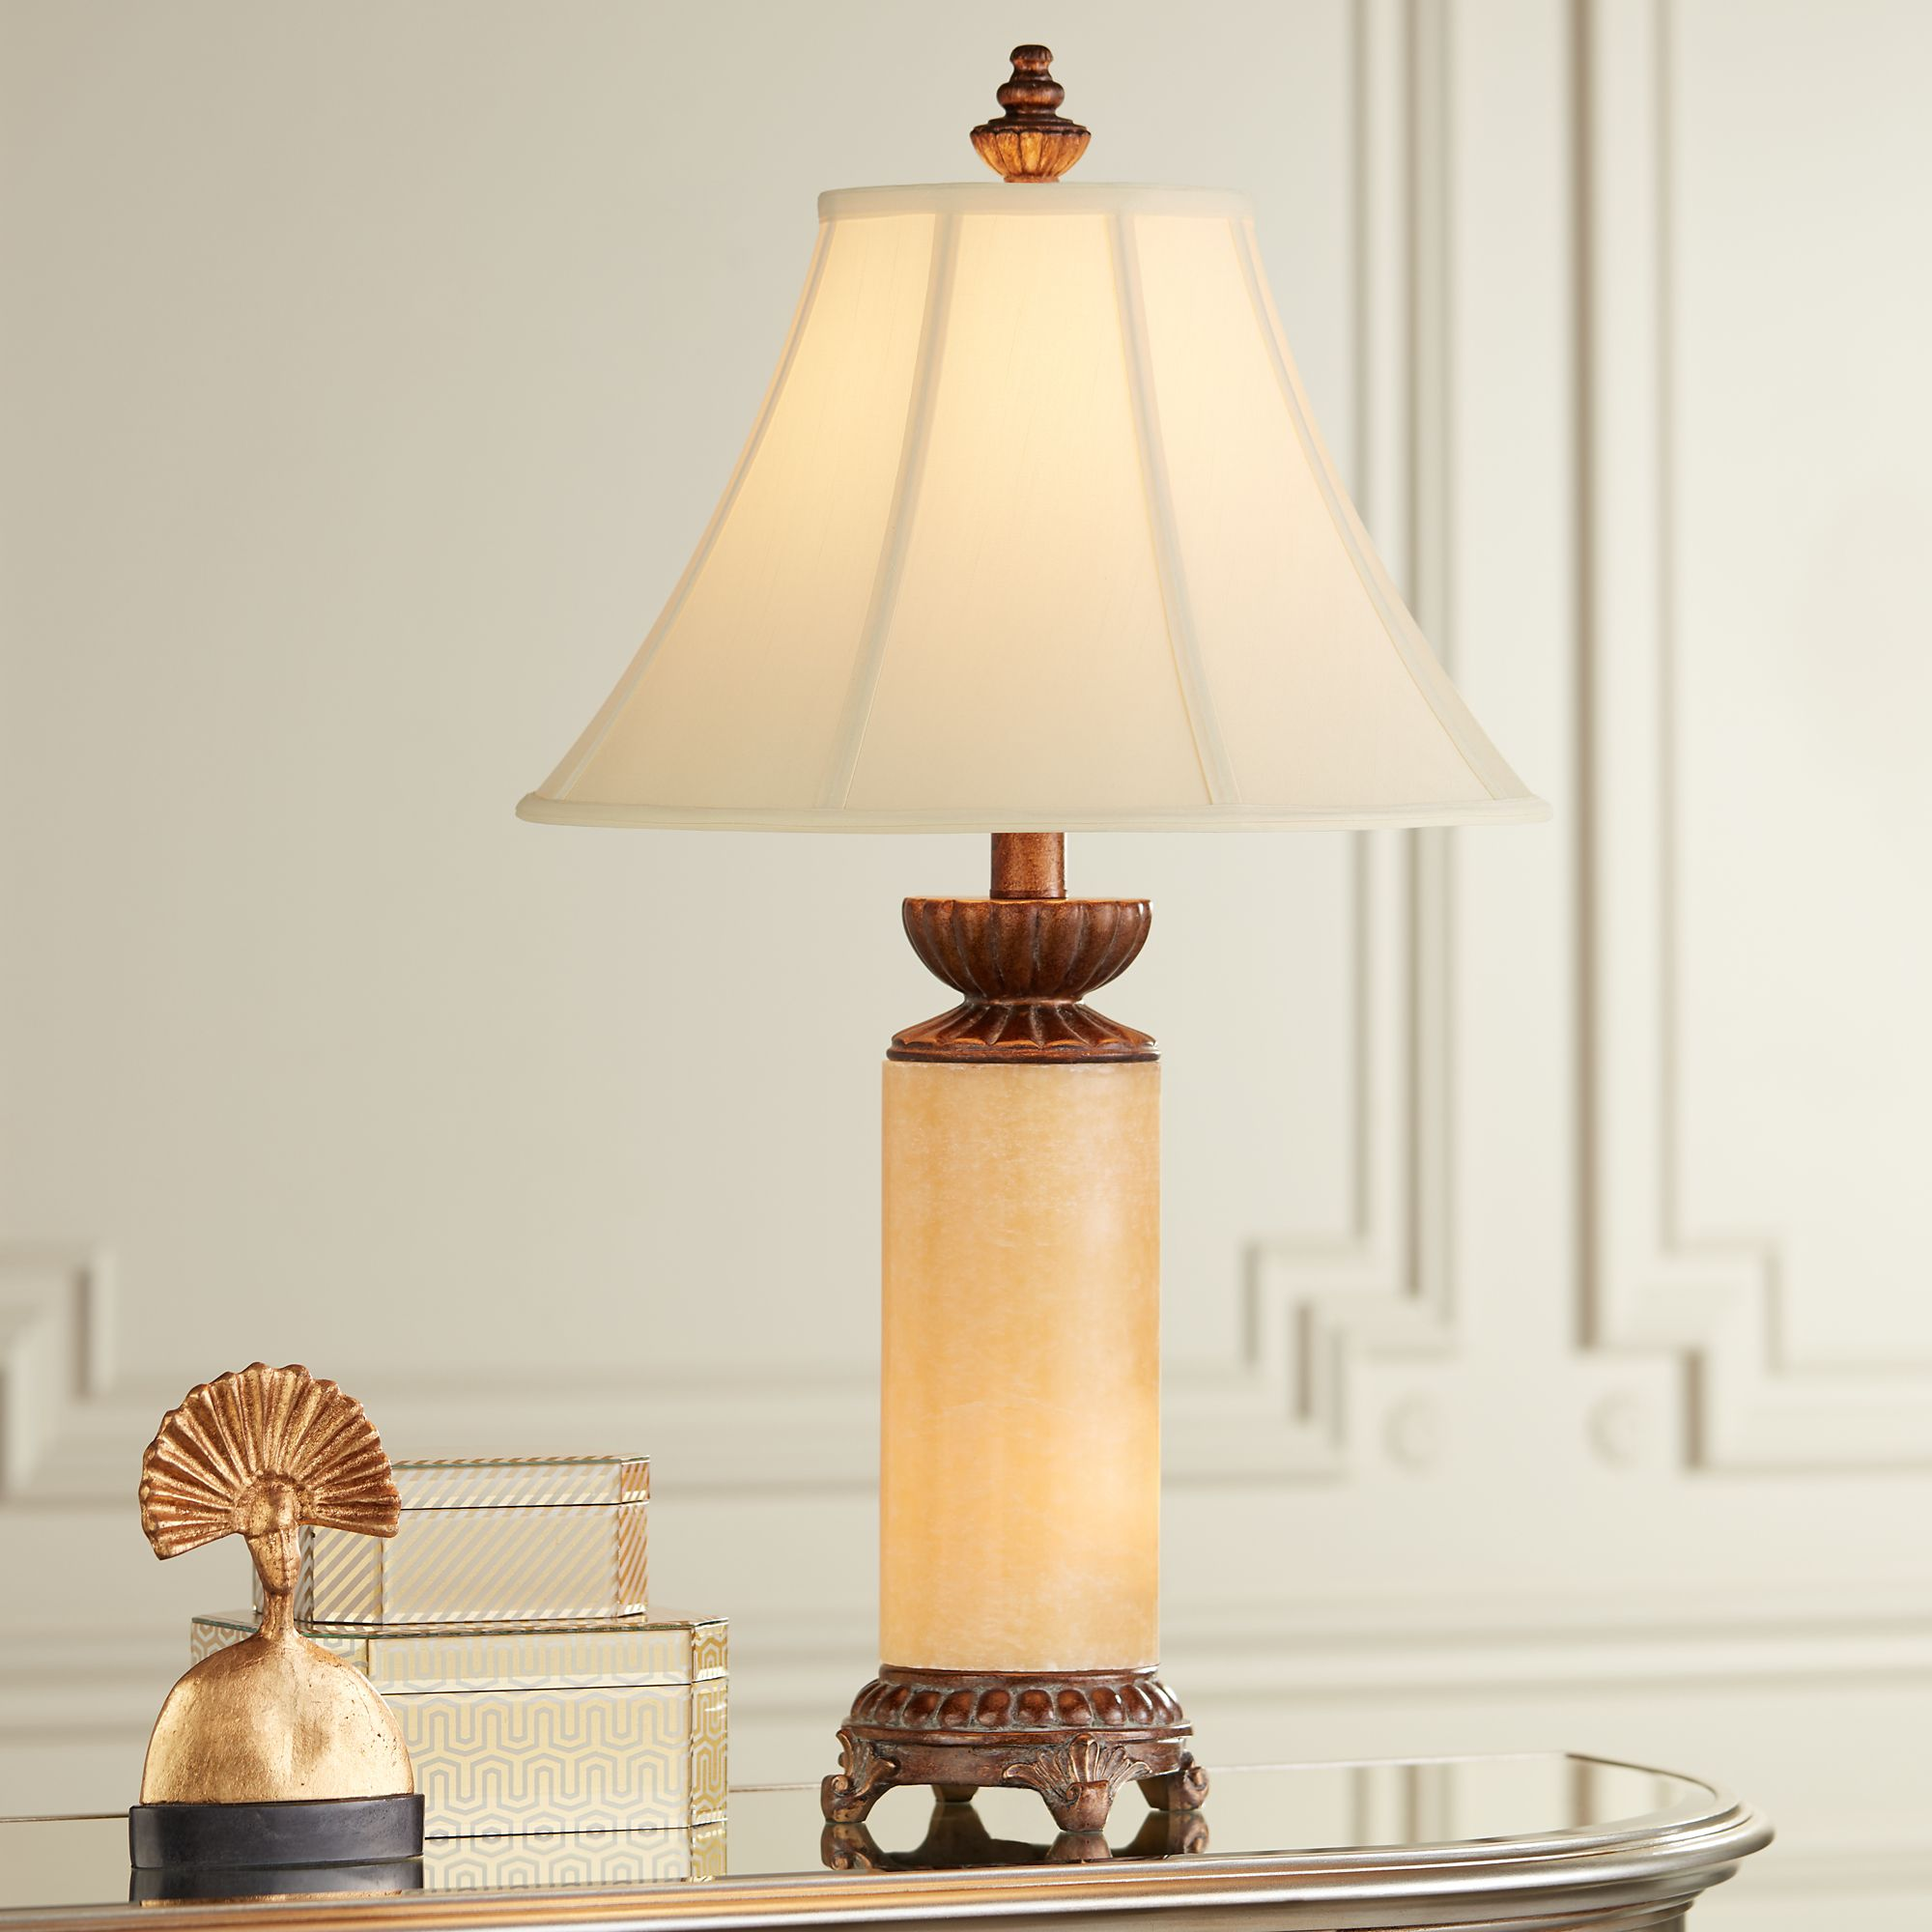 Barnes and Ivy Traditional Table Lamp with Nightlight Bronze Onyx Column Off White Bell Shade for Living Room Family Bedroom